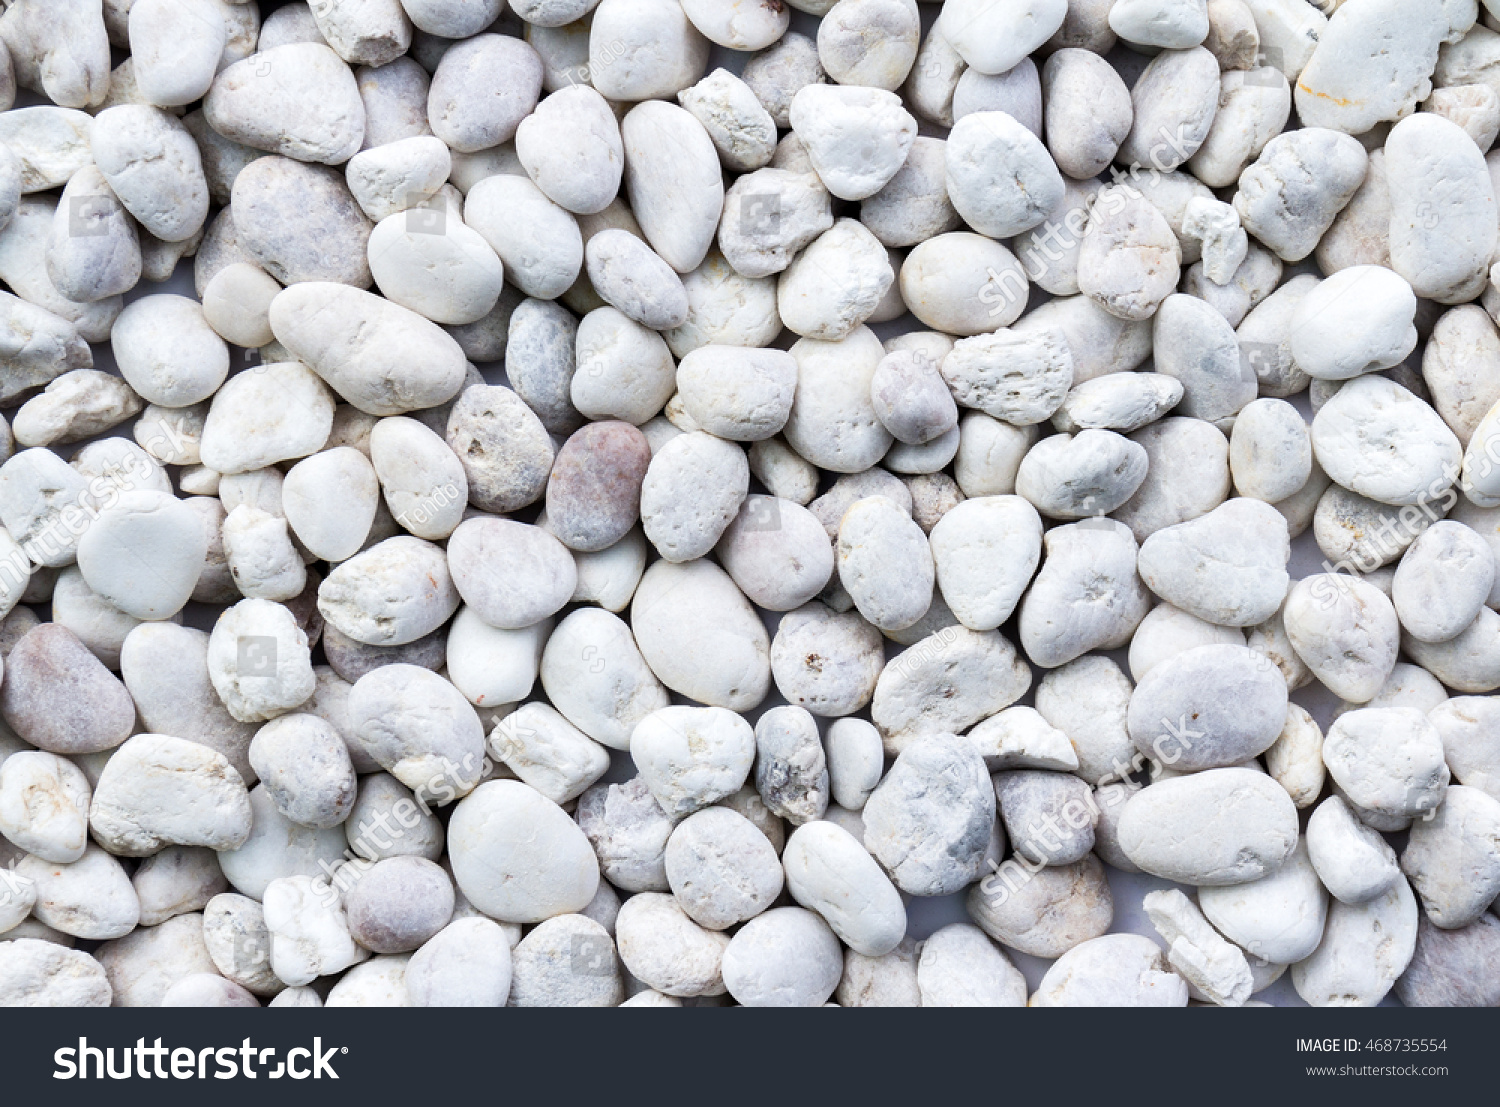 Smooth shaped white stones surface texture background stock photo - White Pebbles Stone Texture And Background